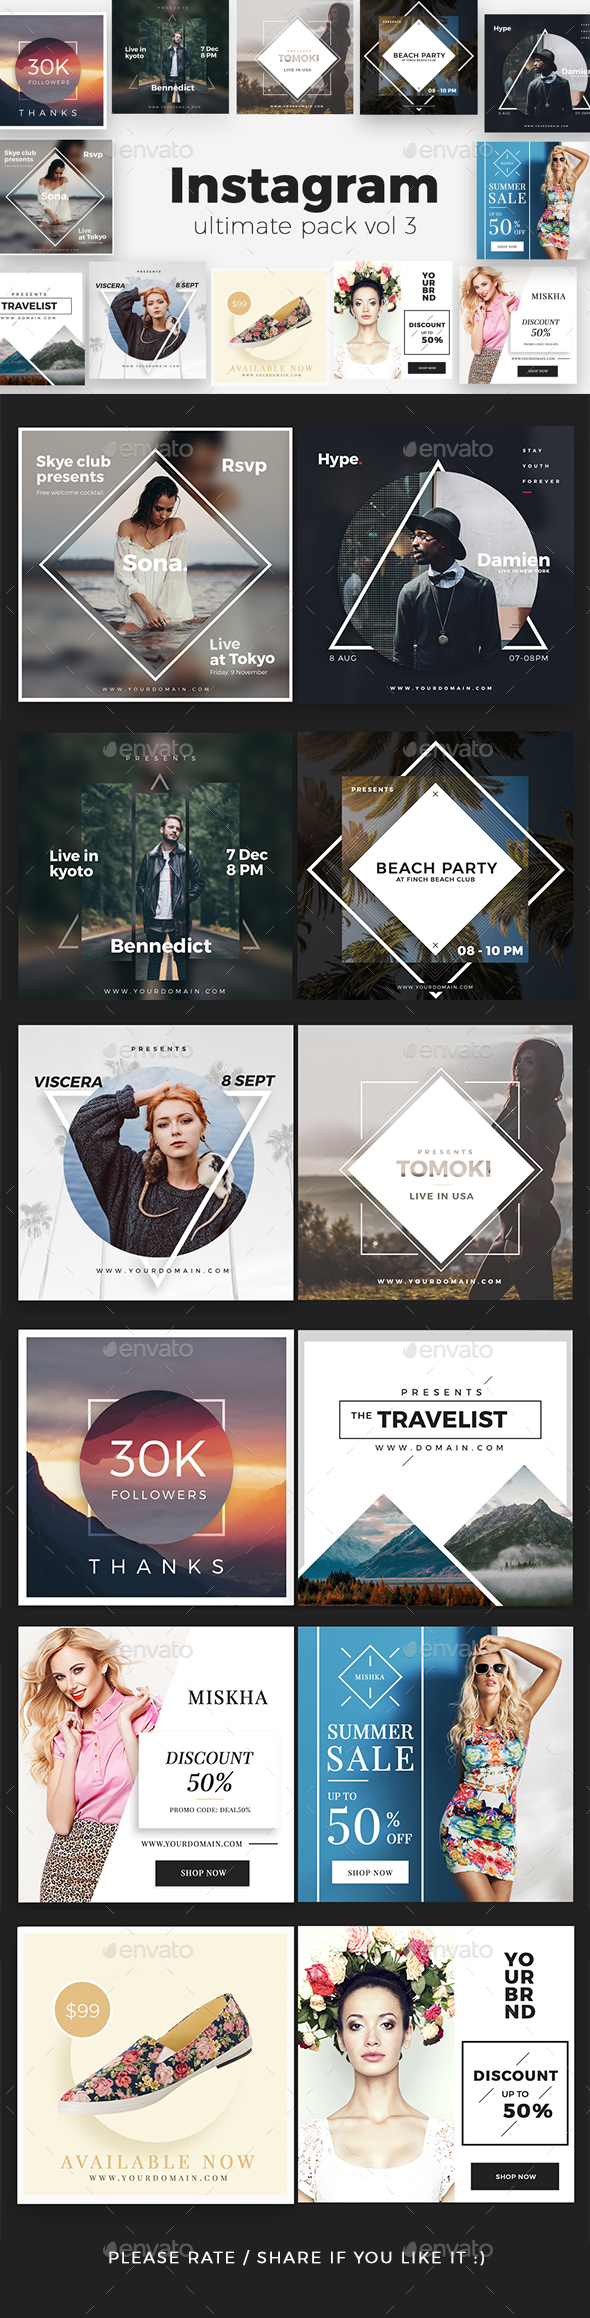 Instagram Pack Vol 3 - Social Media Web Elements